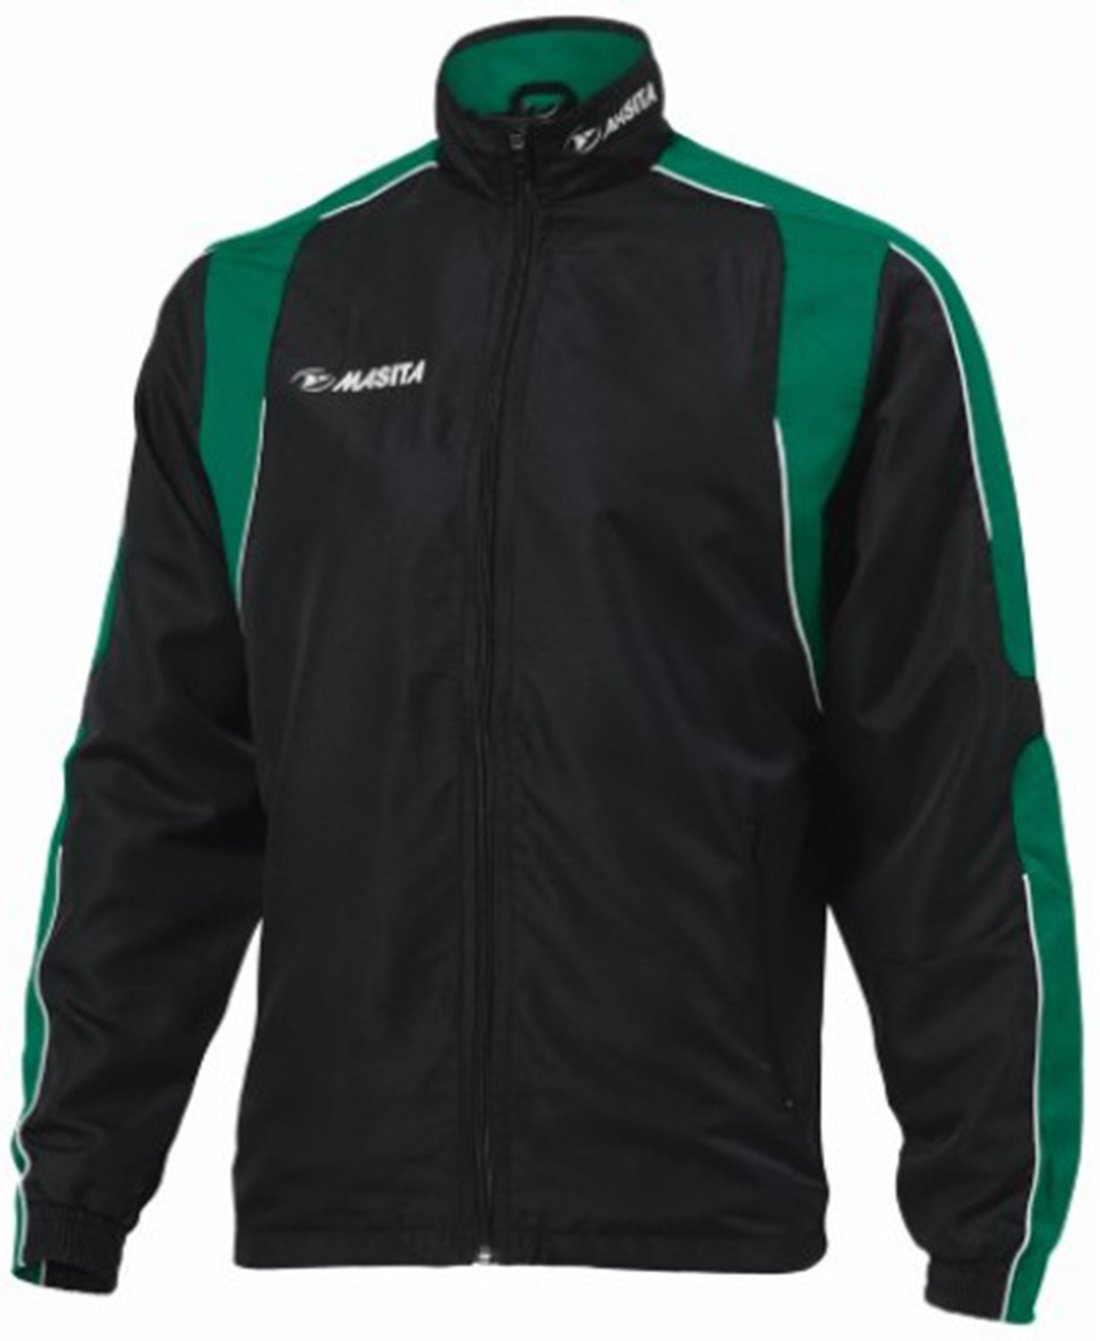 Madrid (tr.suit) Jacket (171016) Black/green (1540)-164